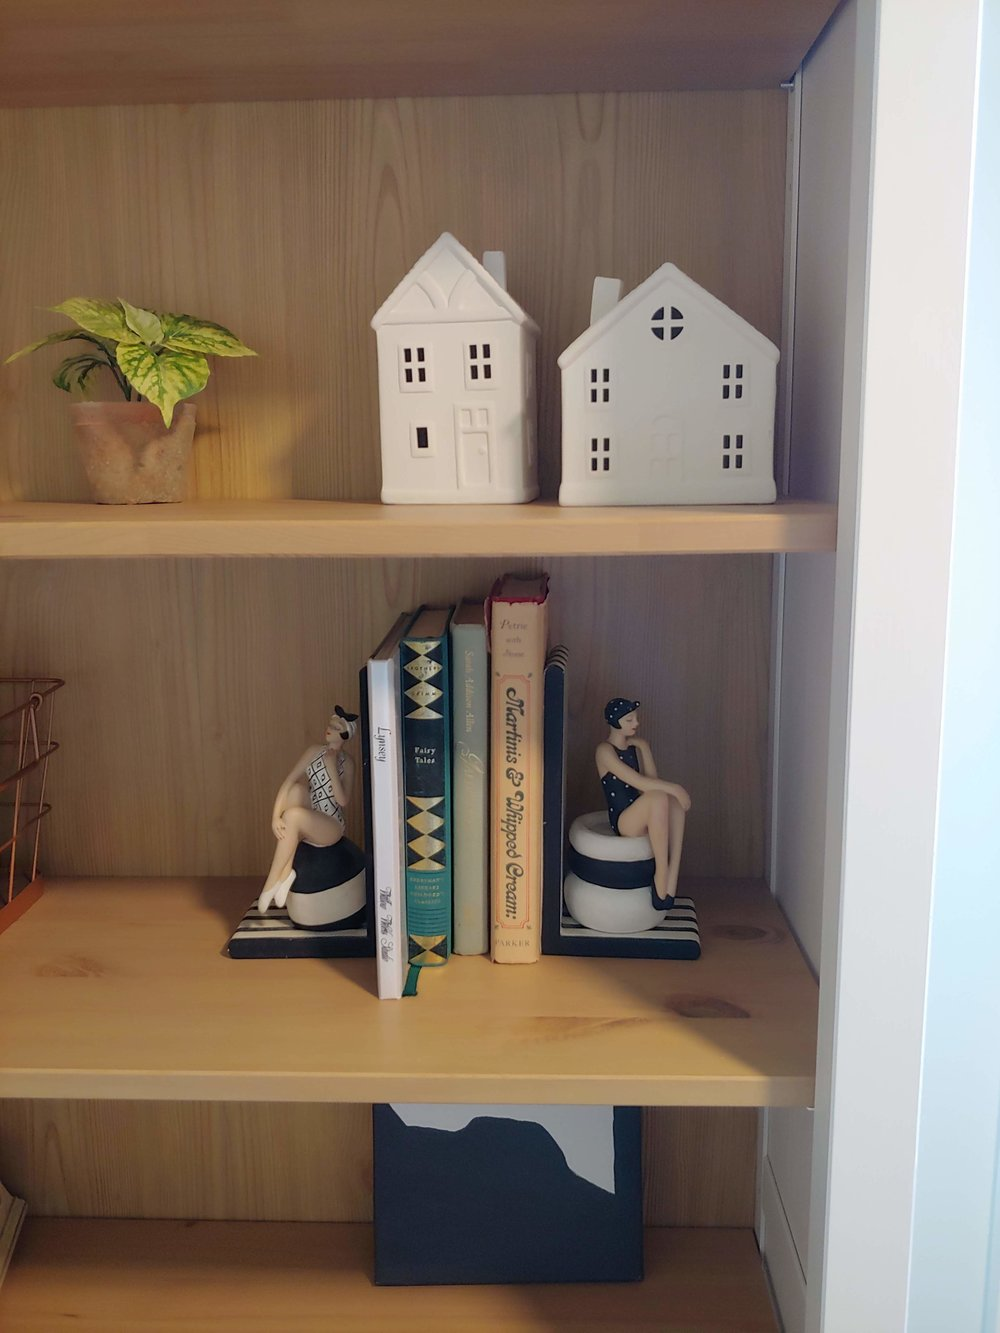 These vintage book ends are a perfect way to highlight some of my vintage books. My mom bought these for me at a yard sale a few years ago.